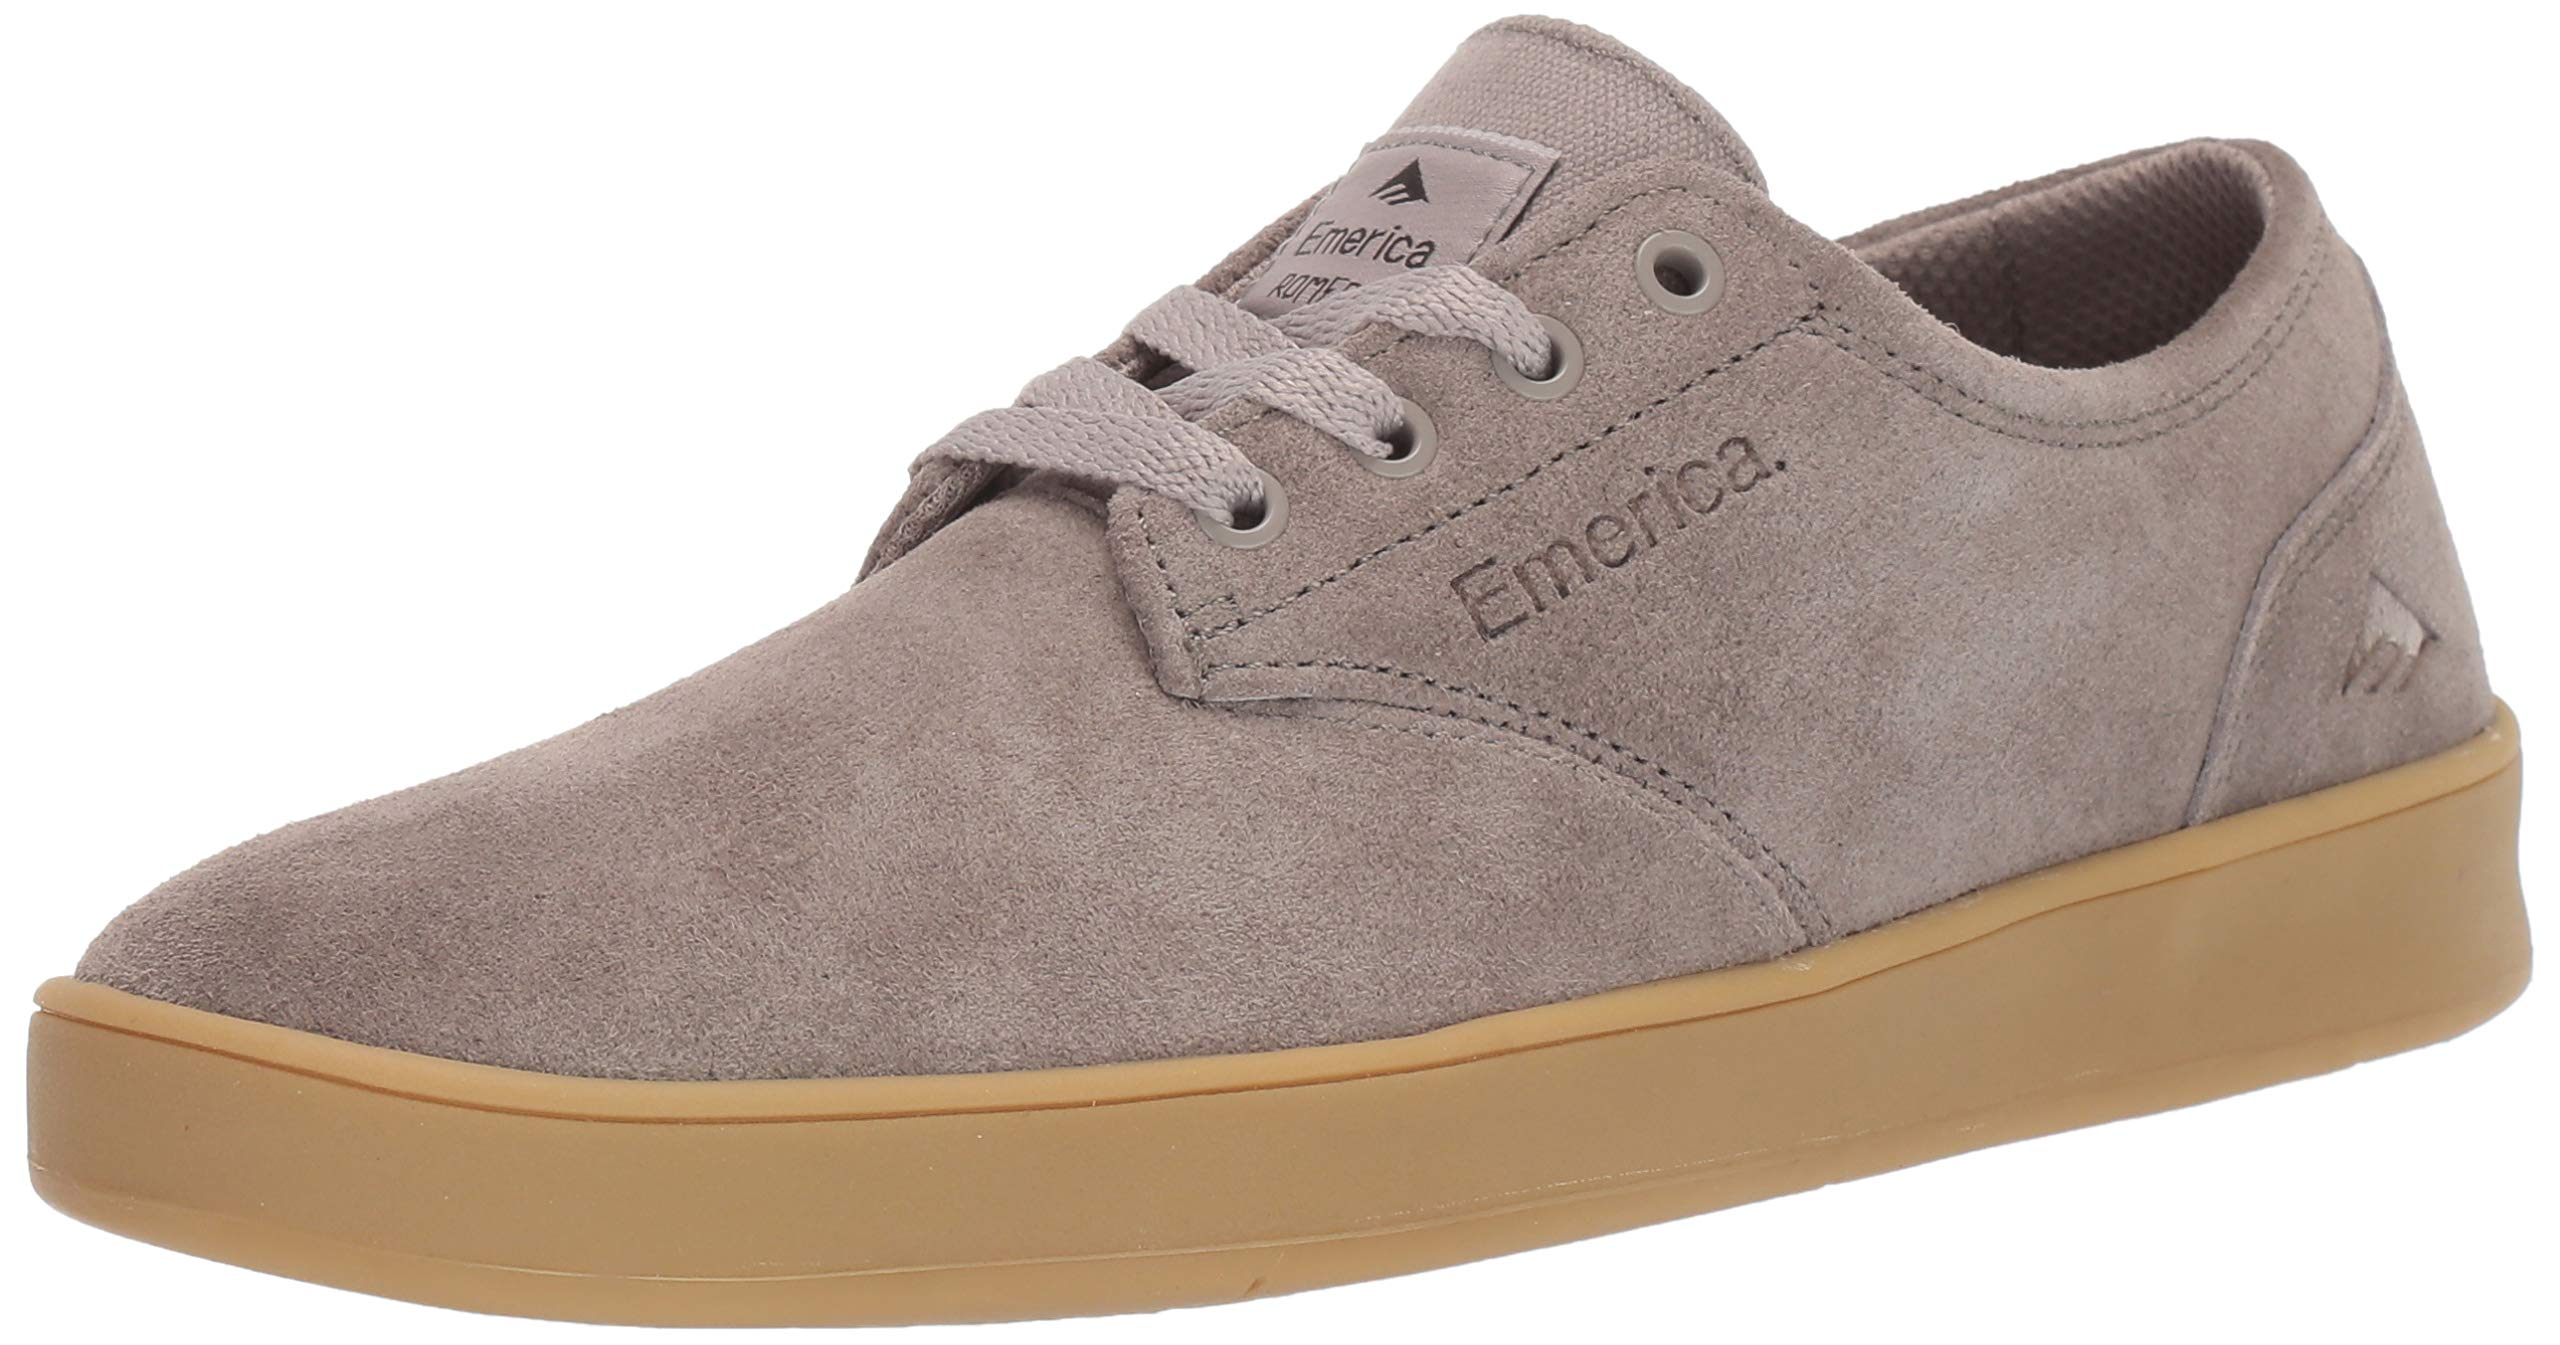 Emerica Men's The Romero Laced Skate Shoe, Warm Grey/tan, 8.5 Medium US by Emerica